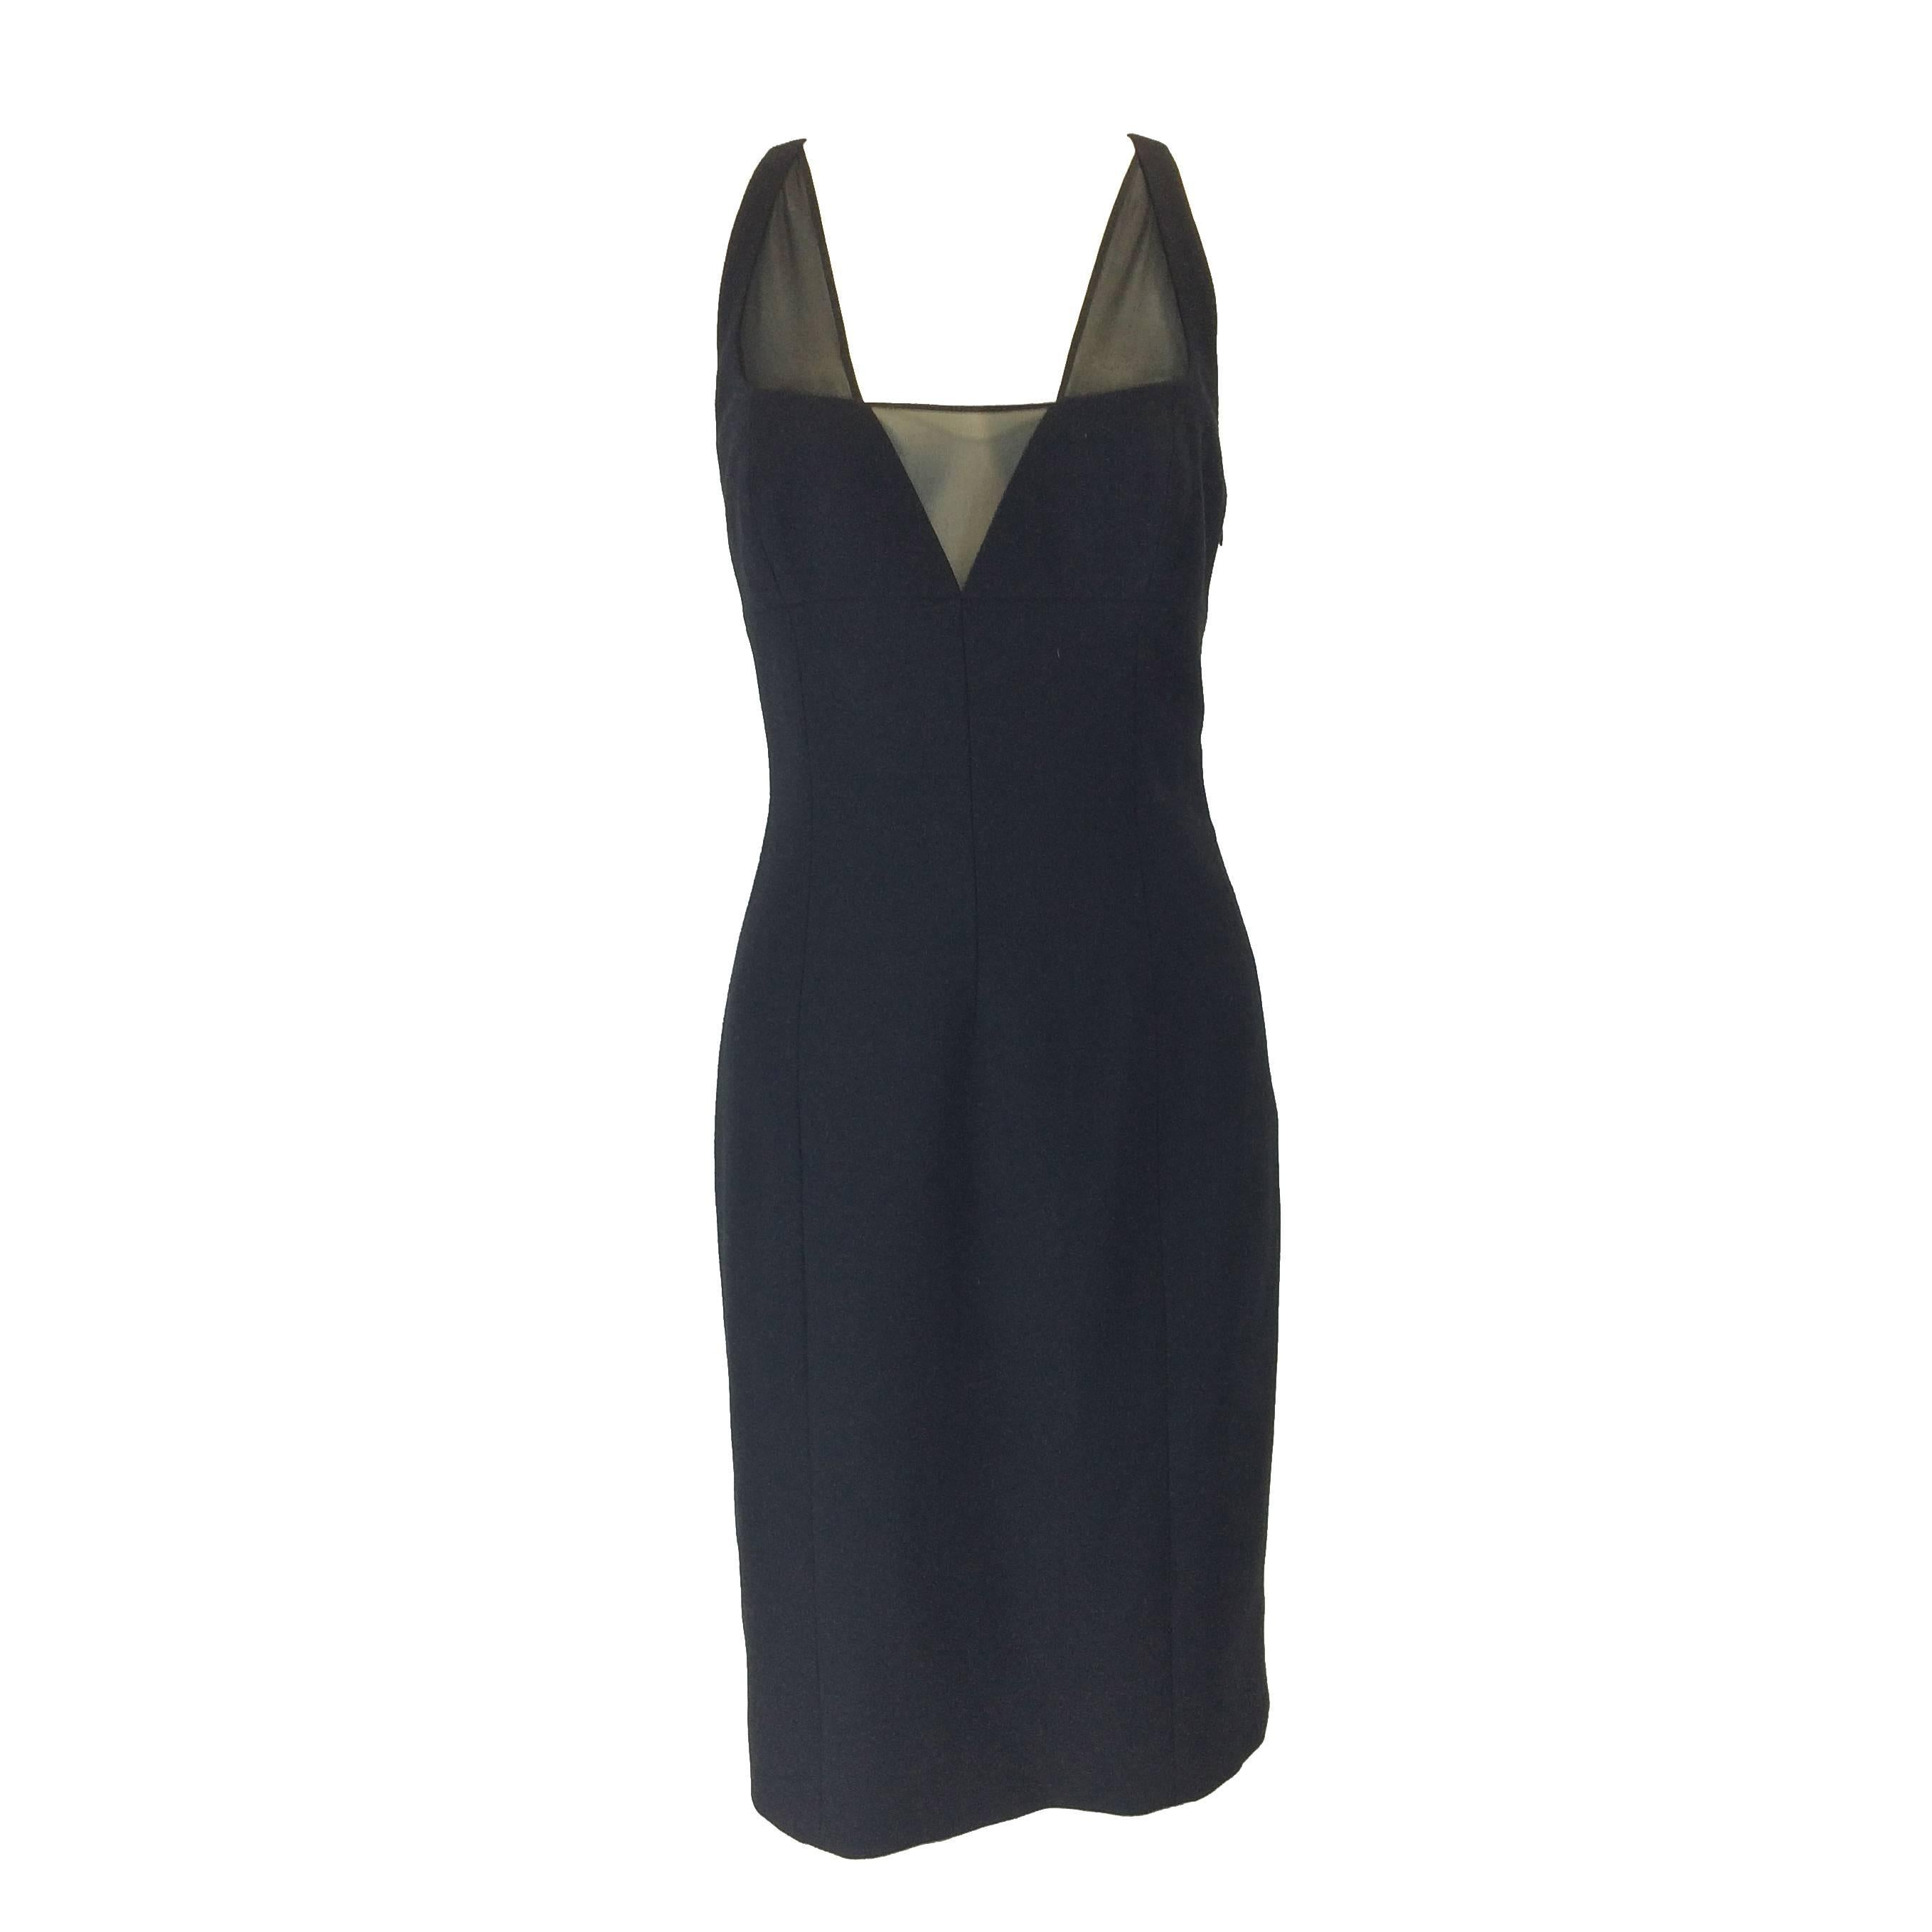 2087330a1b2 Gianni Versace Black Bodycon Cocktail Dress For Sale at 1stdibs